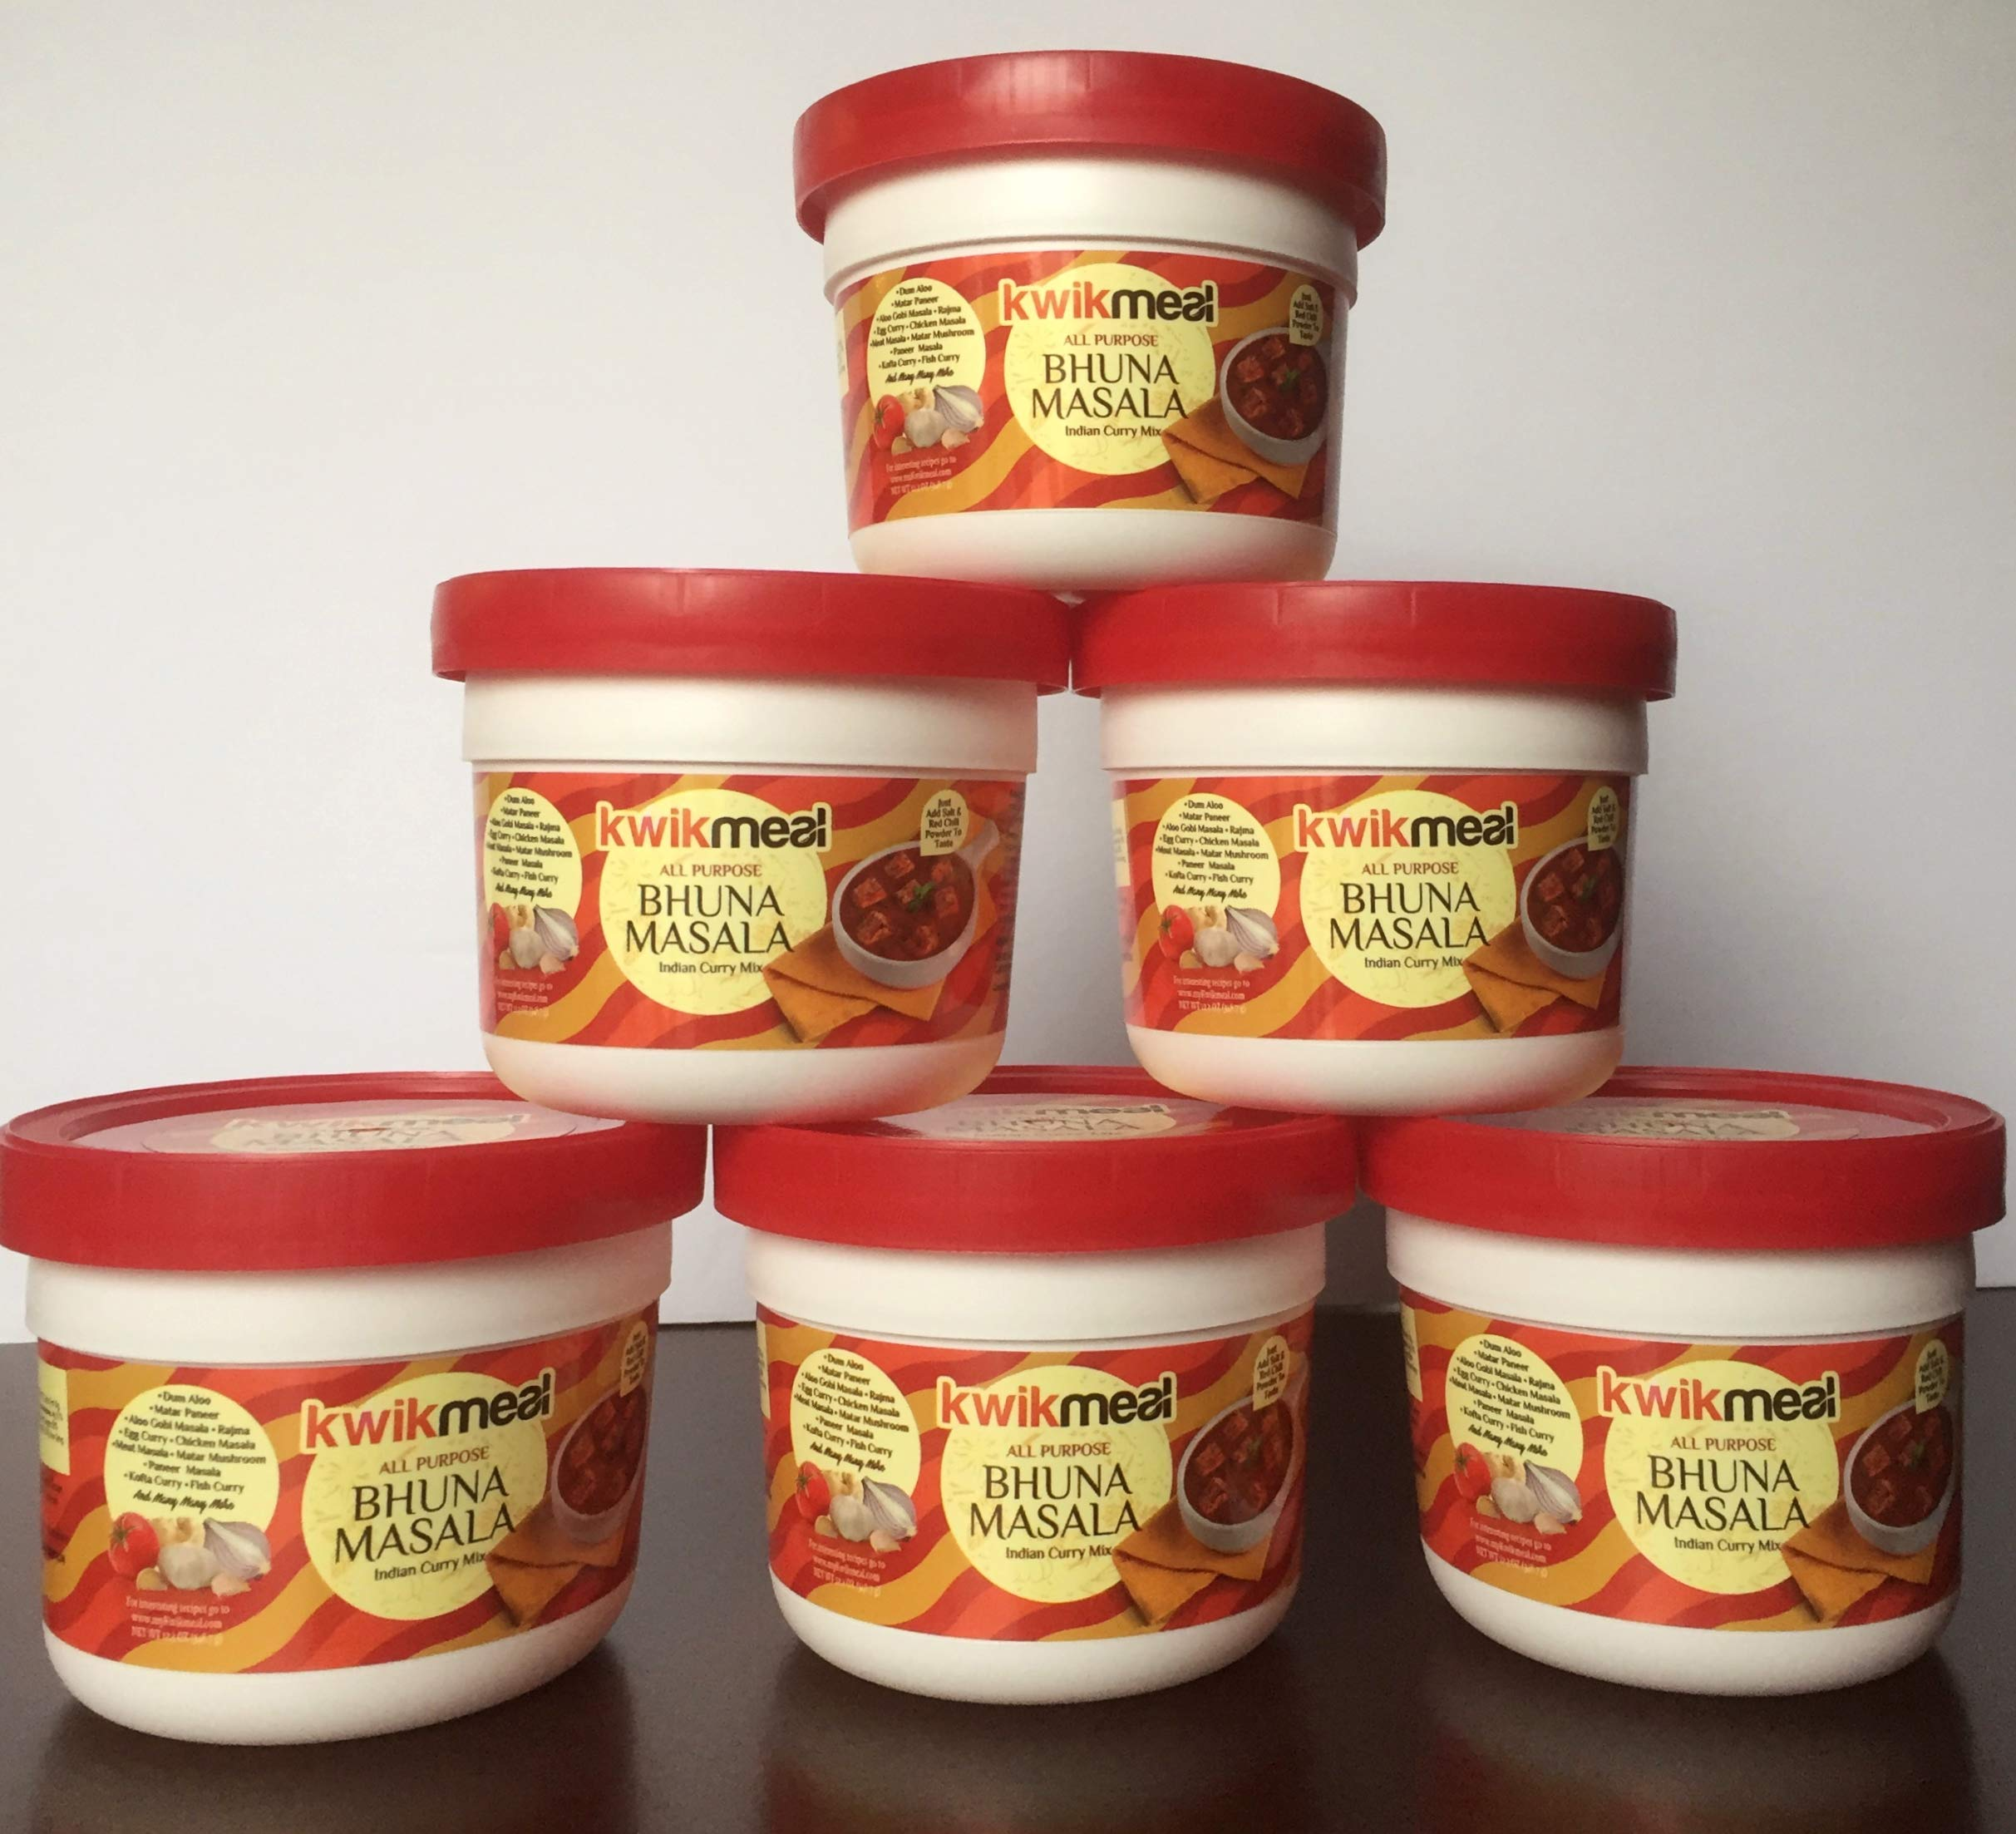 KwikMeal All Purpose Bhuna Masala (6 Pack). $33.19. Each Pack 348.7 gms. Unit Price: $5.53. BEST VALUE &